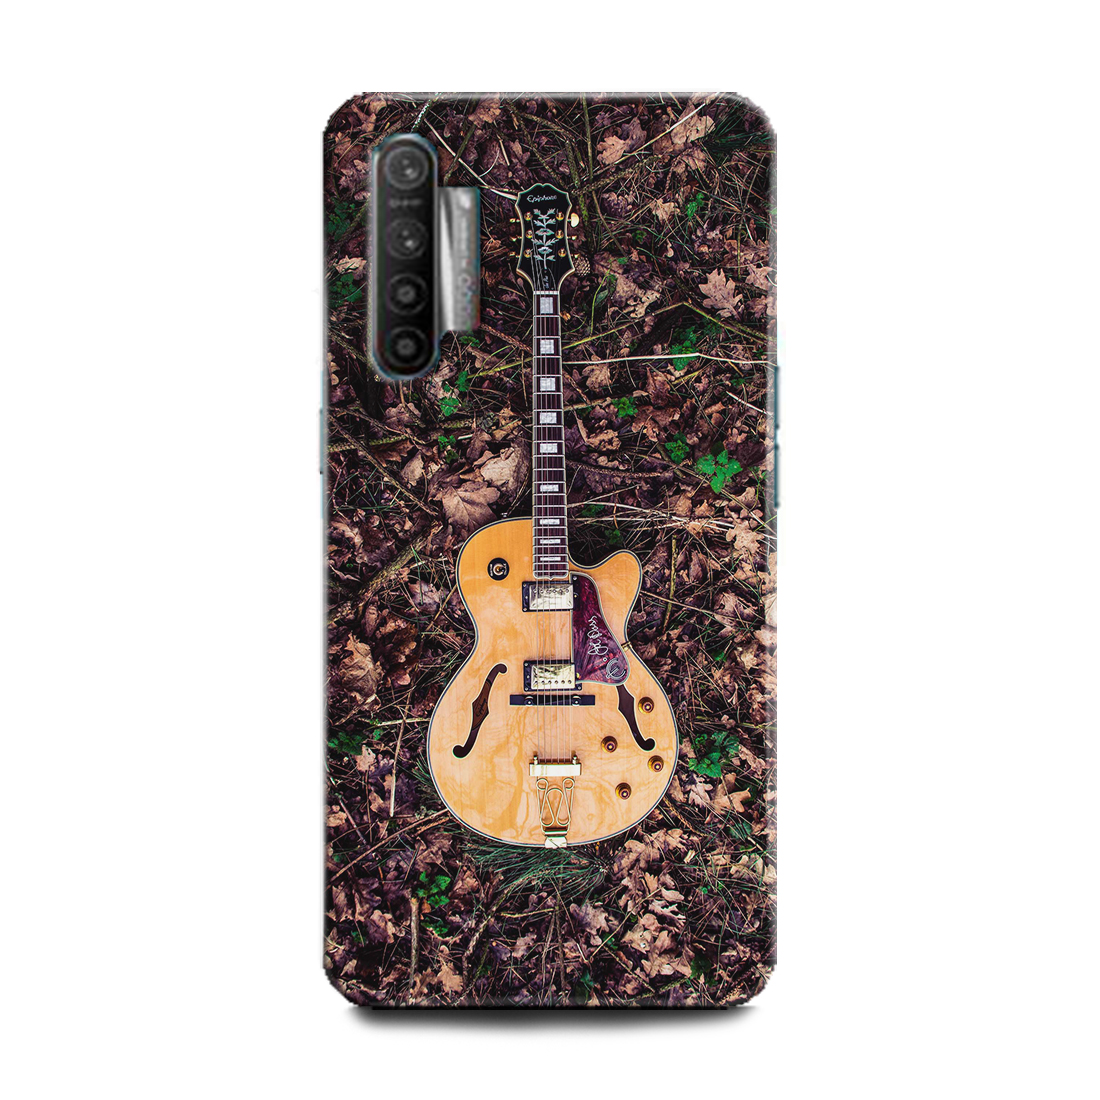 INDICRAFT Mobile Back Cover For Realme X2 Hard Case (Guitar, Music, Music Instrument, Wooden Guitar, RMX1992) (AB-RealmeX2-0718)